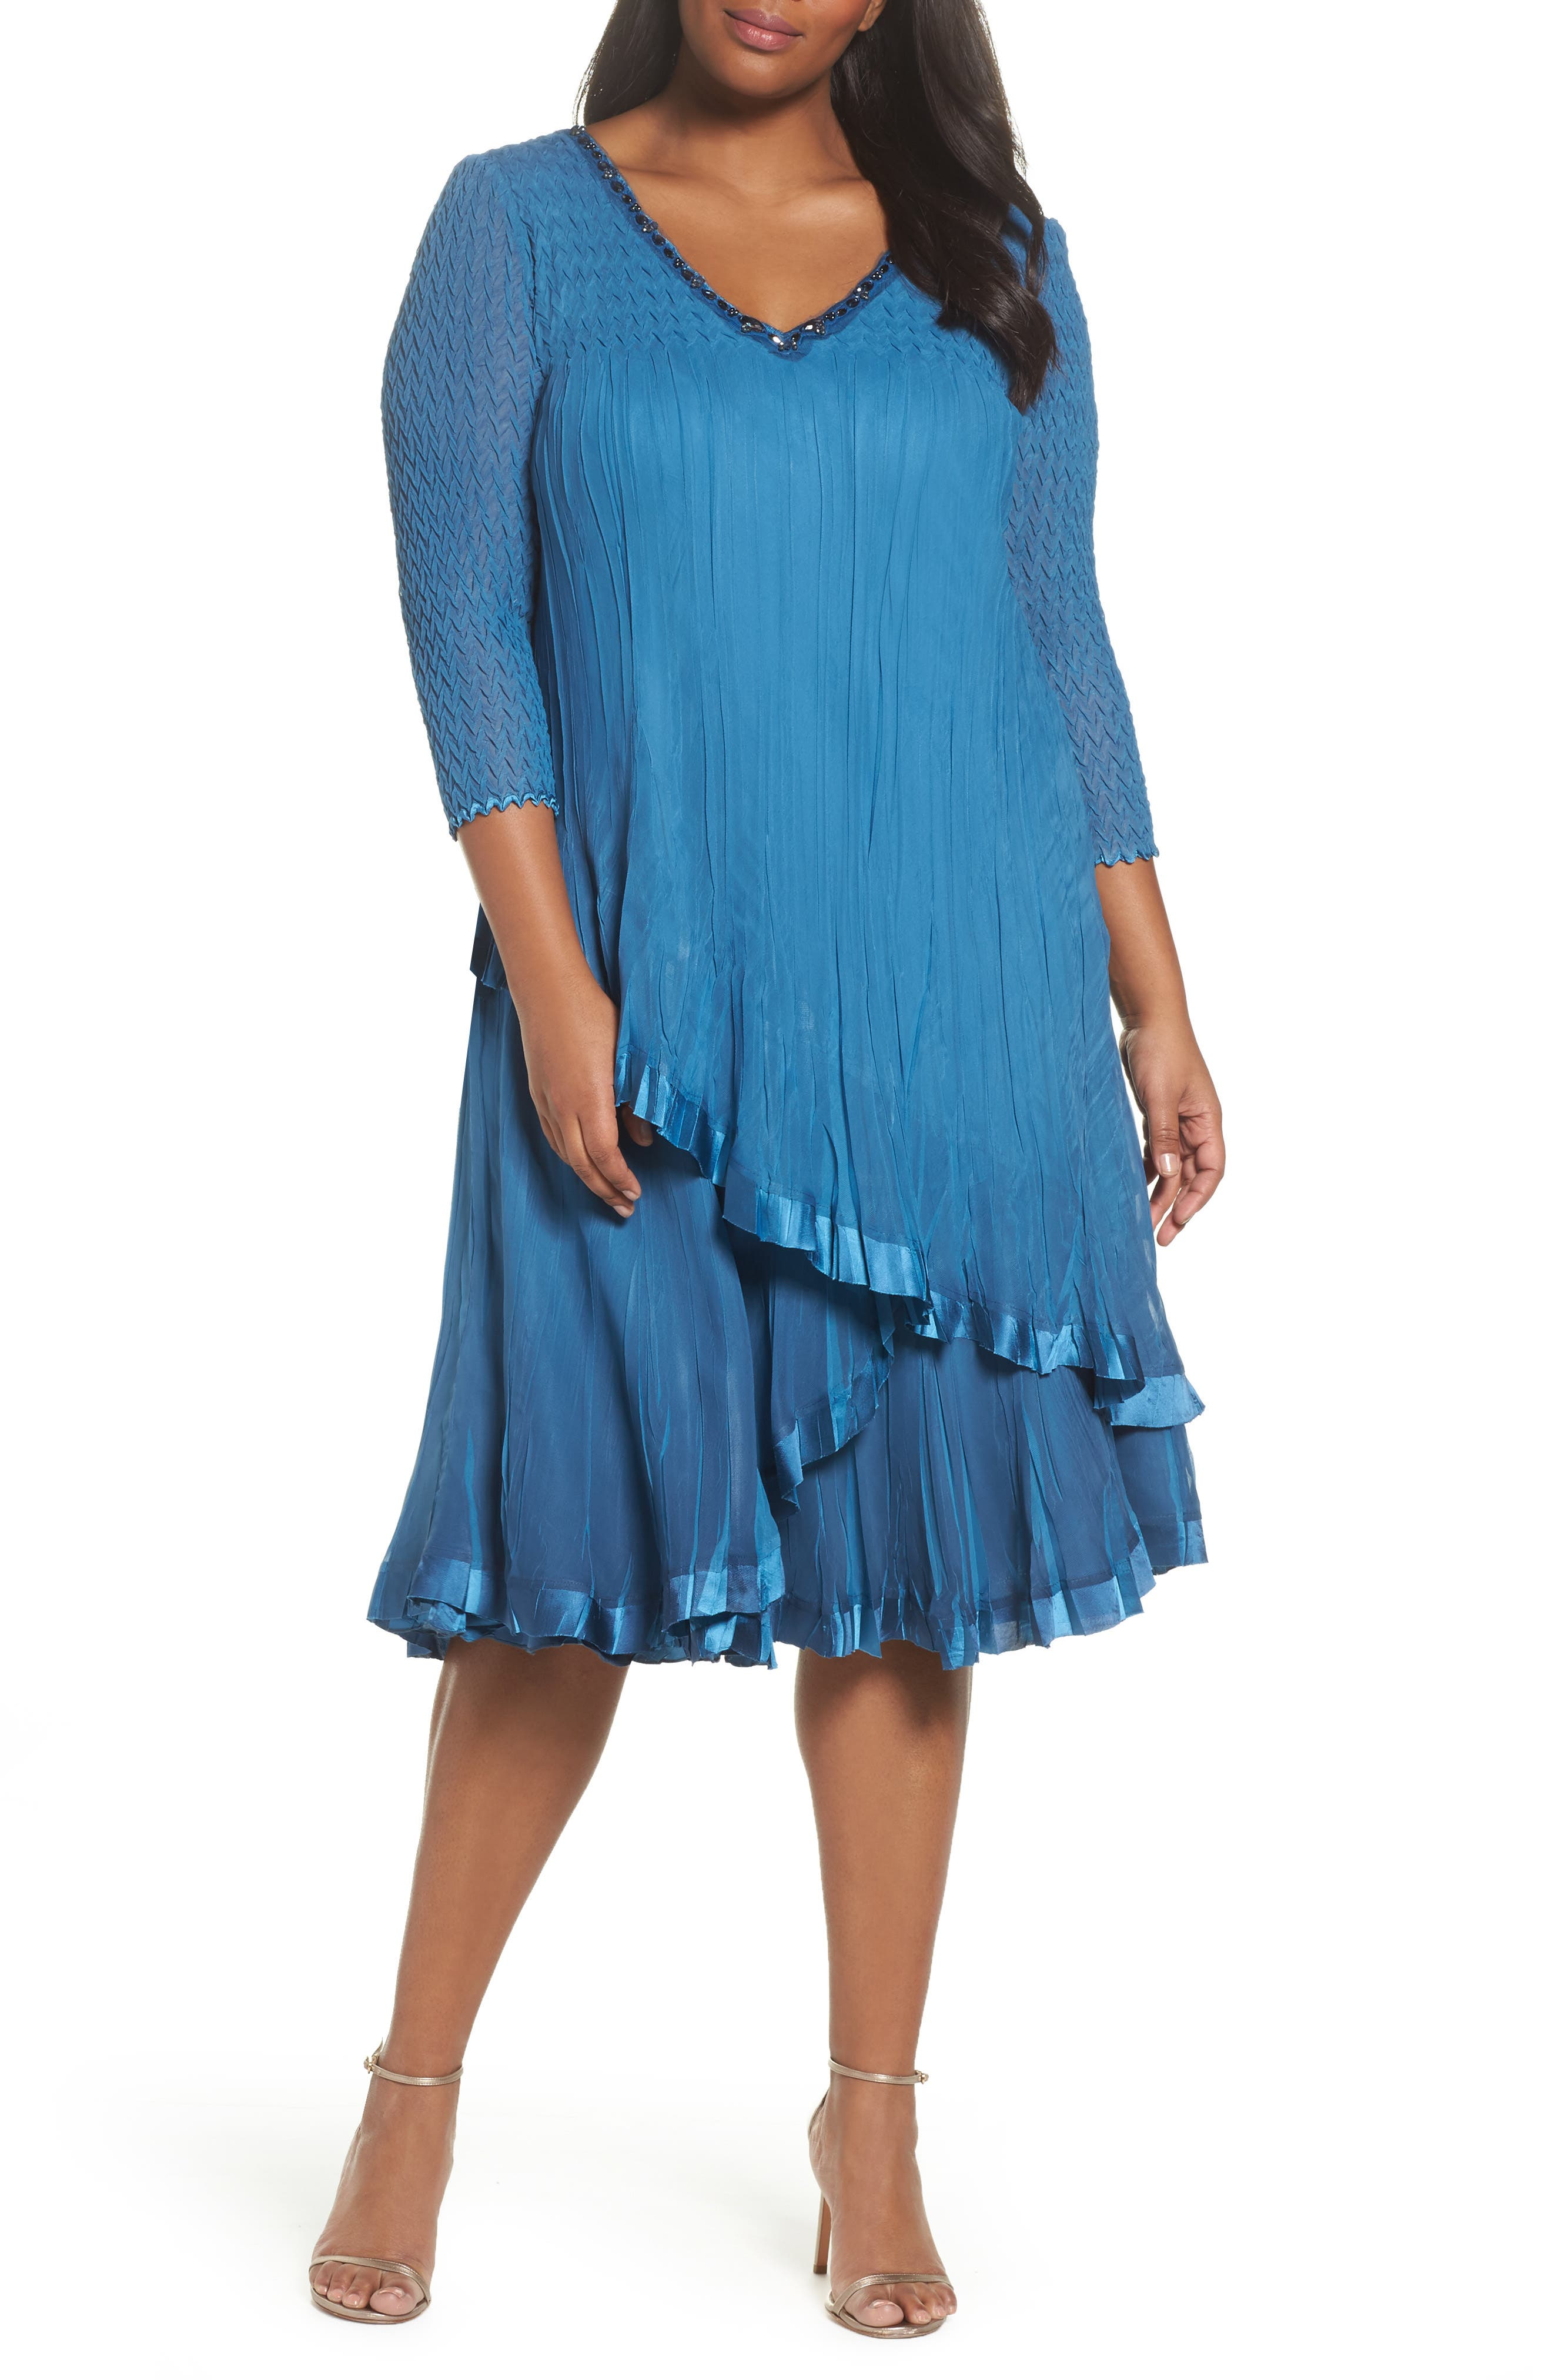 Dress Tiered Chiffon & Charmeuse Dress,                         Main,                         color, Blue Dusk Night Ombre